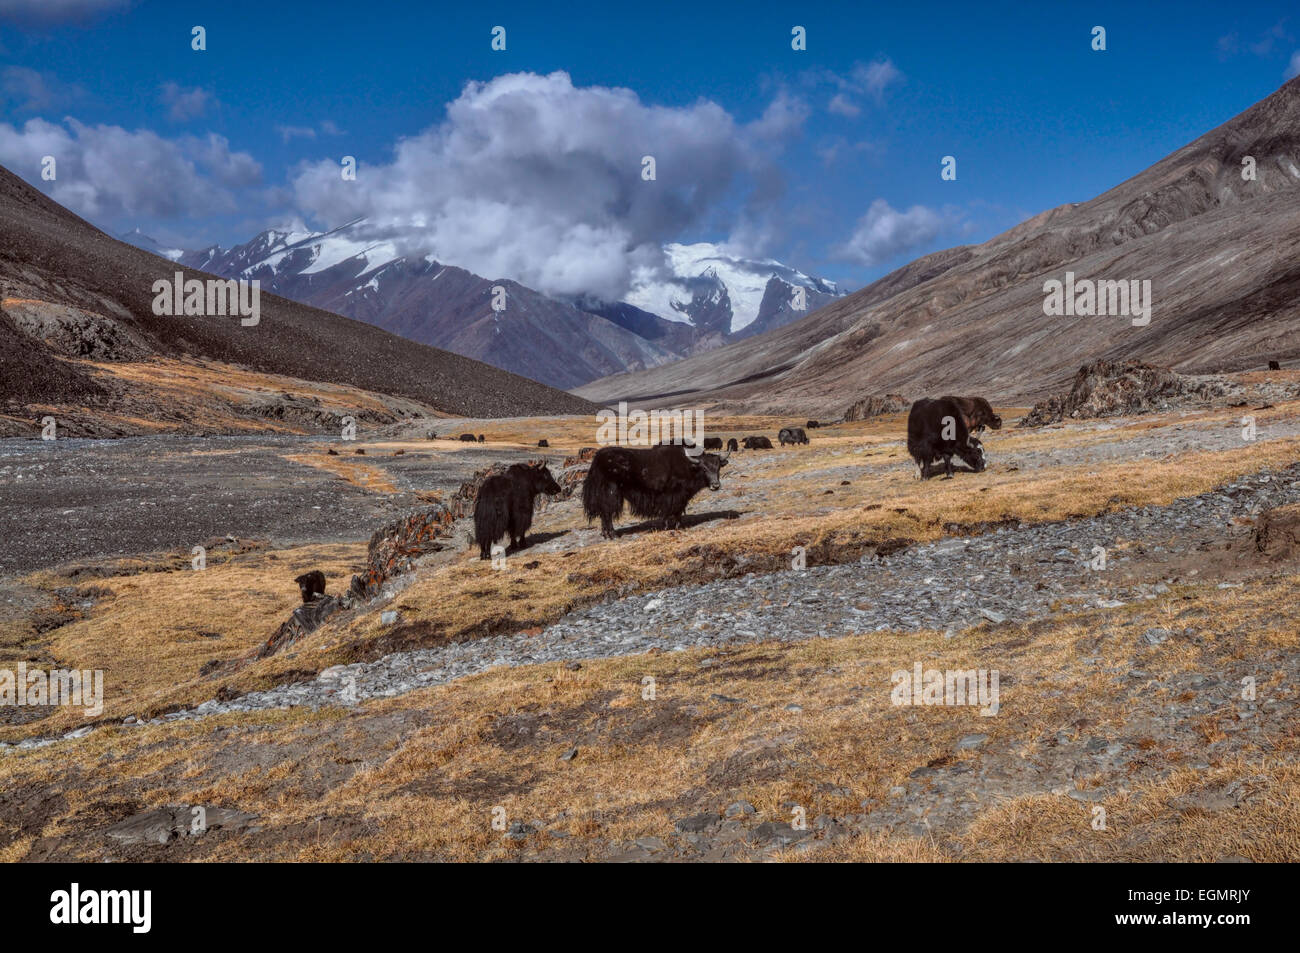 Herd of yaks in Pamir mountains in Tajikistan - Stock Image